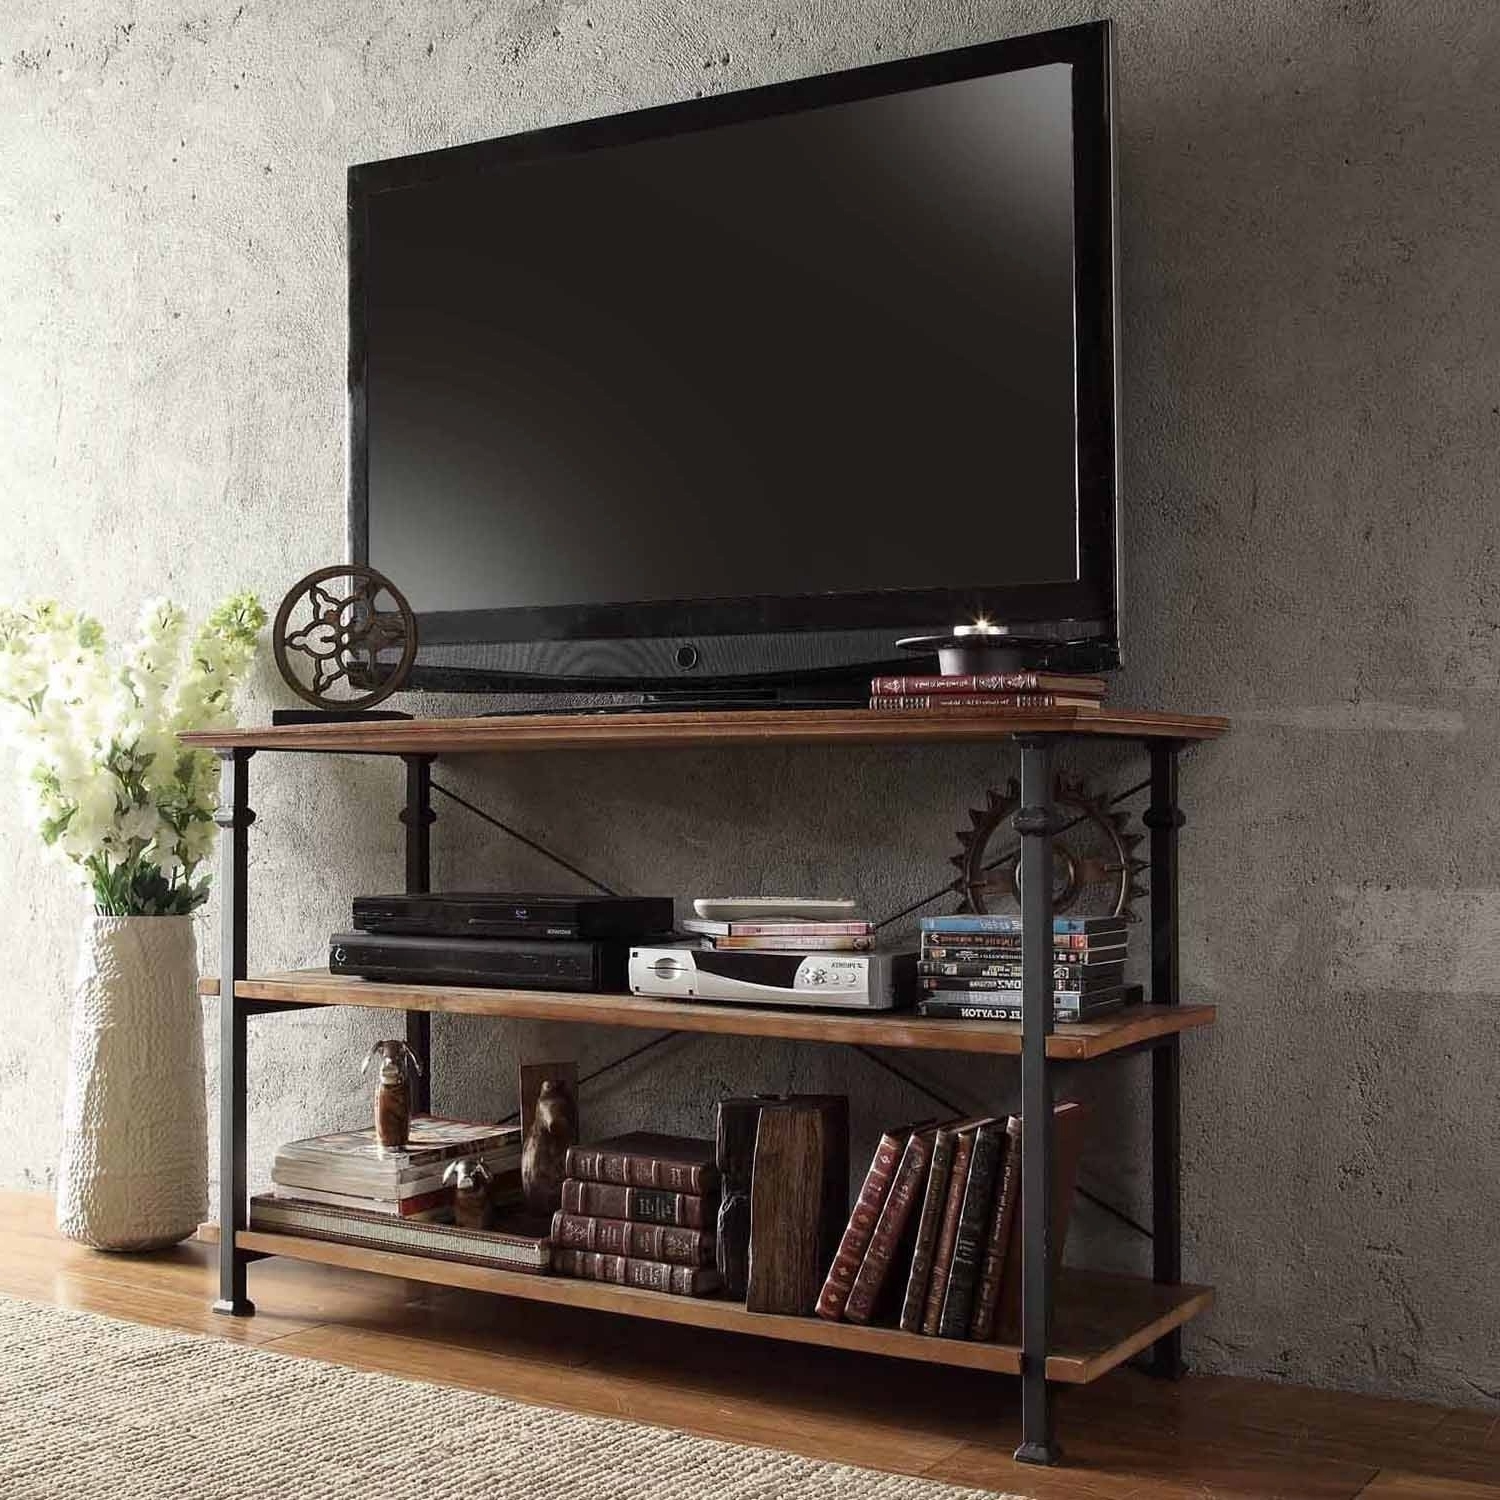 Fashionable Furniture: Handmade Wood And Metal Industrial Tv Stand With Shelf With Handmade Tv Unit (View 6 of 15)